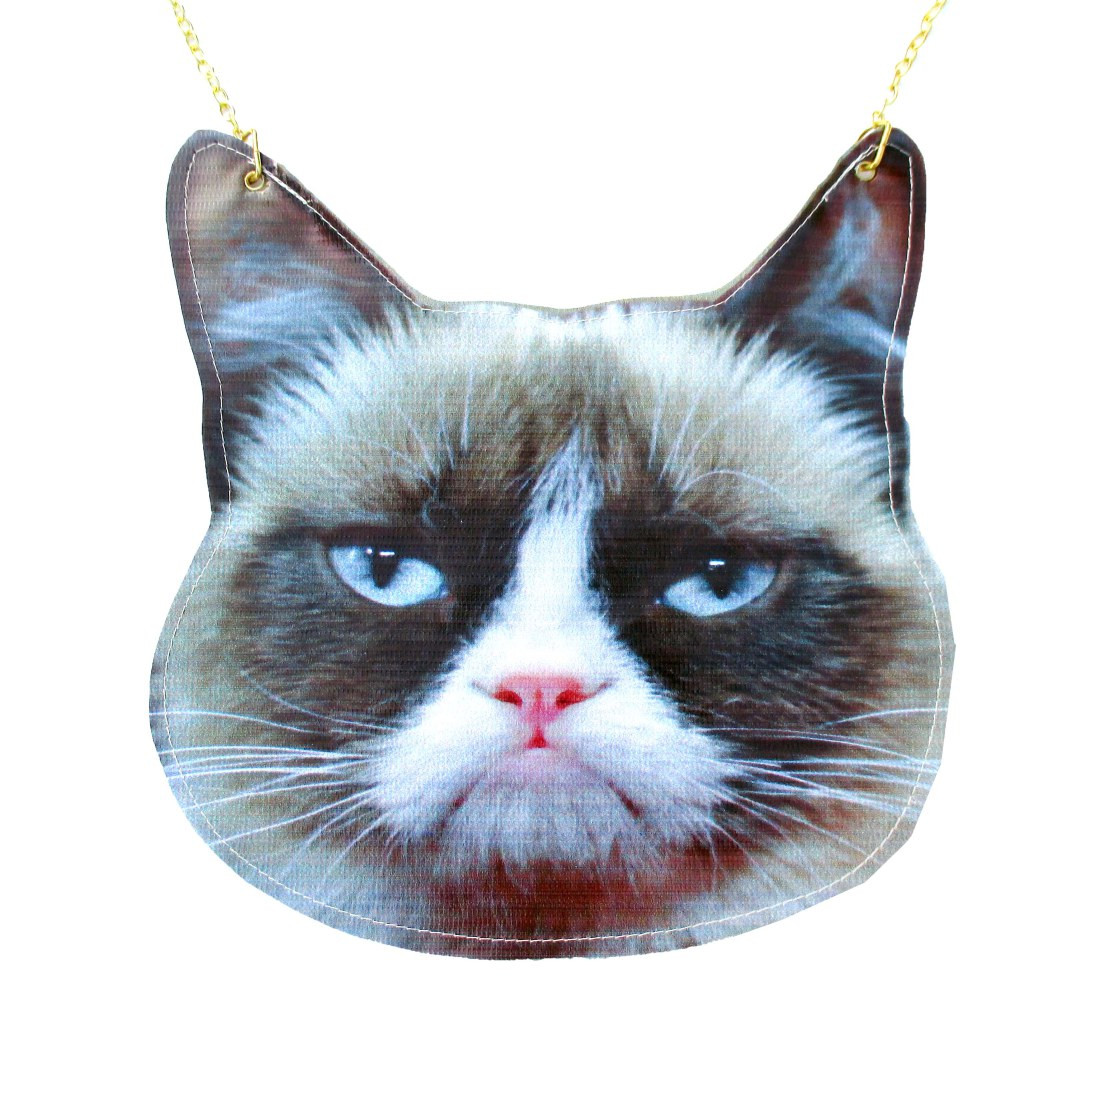 Grumpy Cats: It'-s the New Thing on the Internet - Catster